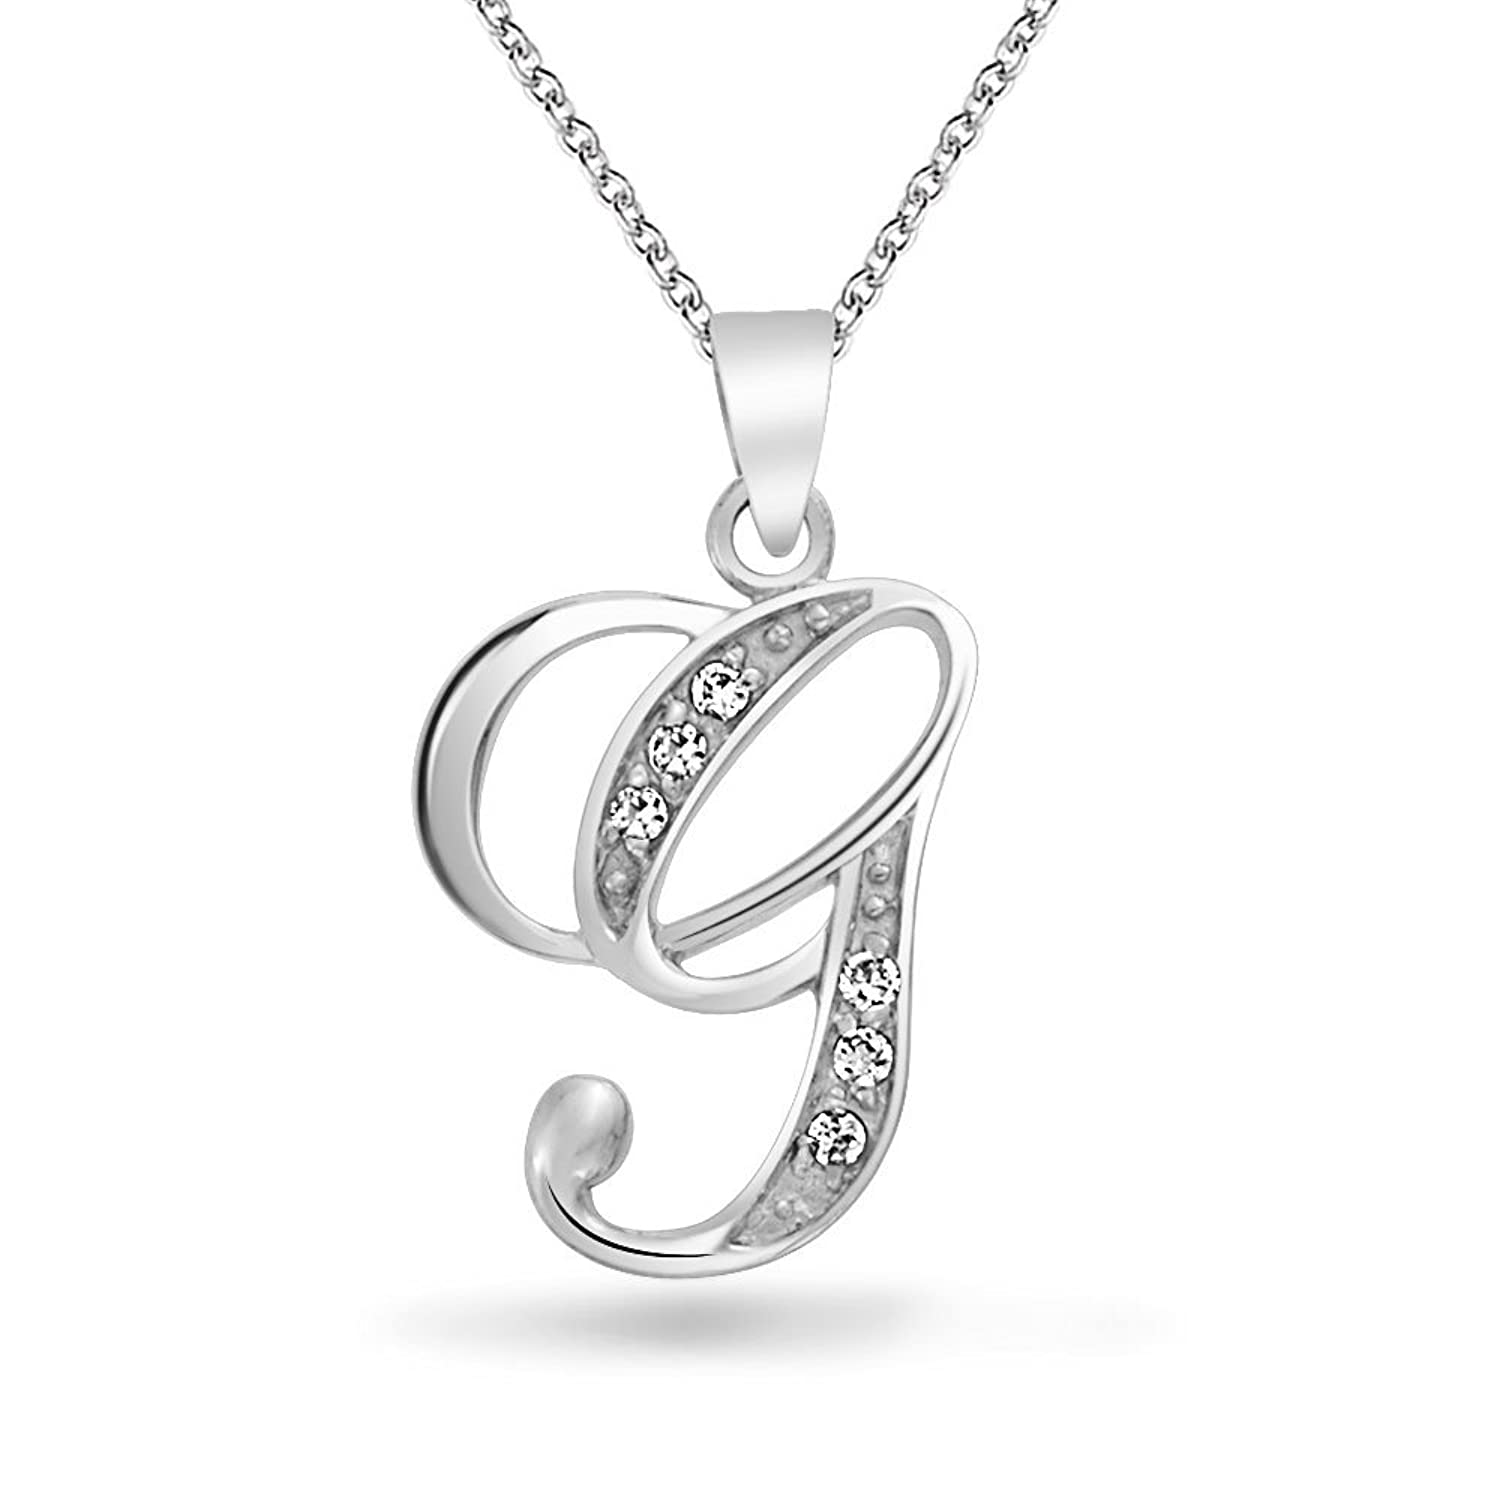 spade york com pendants pendant b alphabet amazon jewelry dp necklace new kate